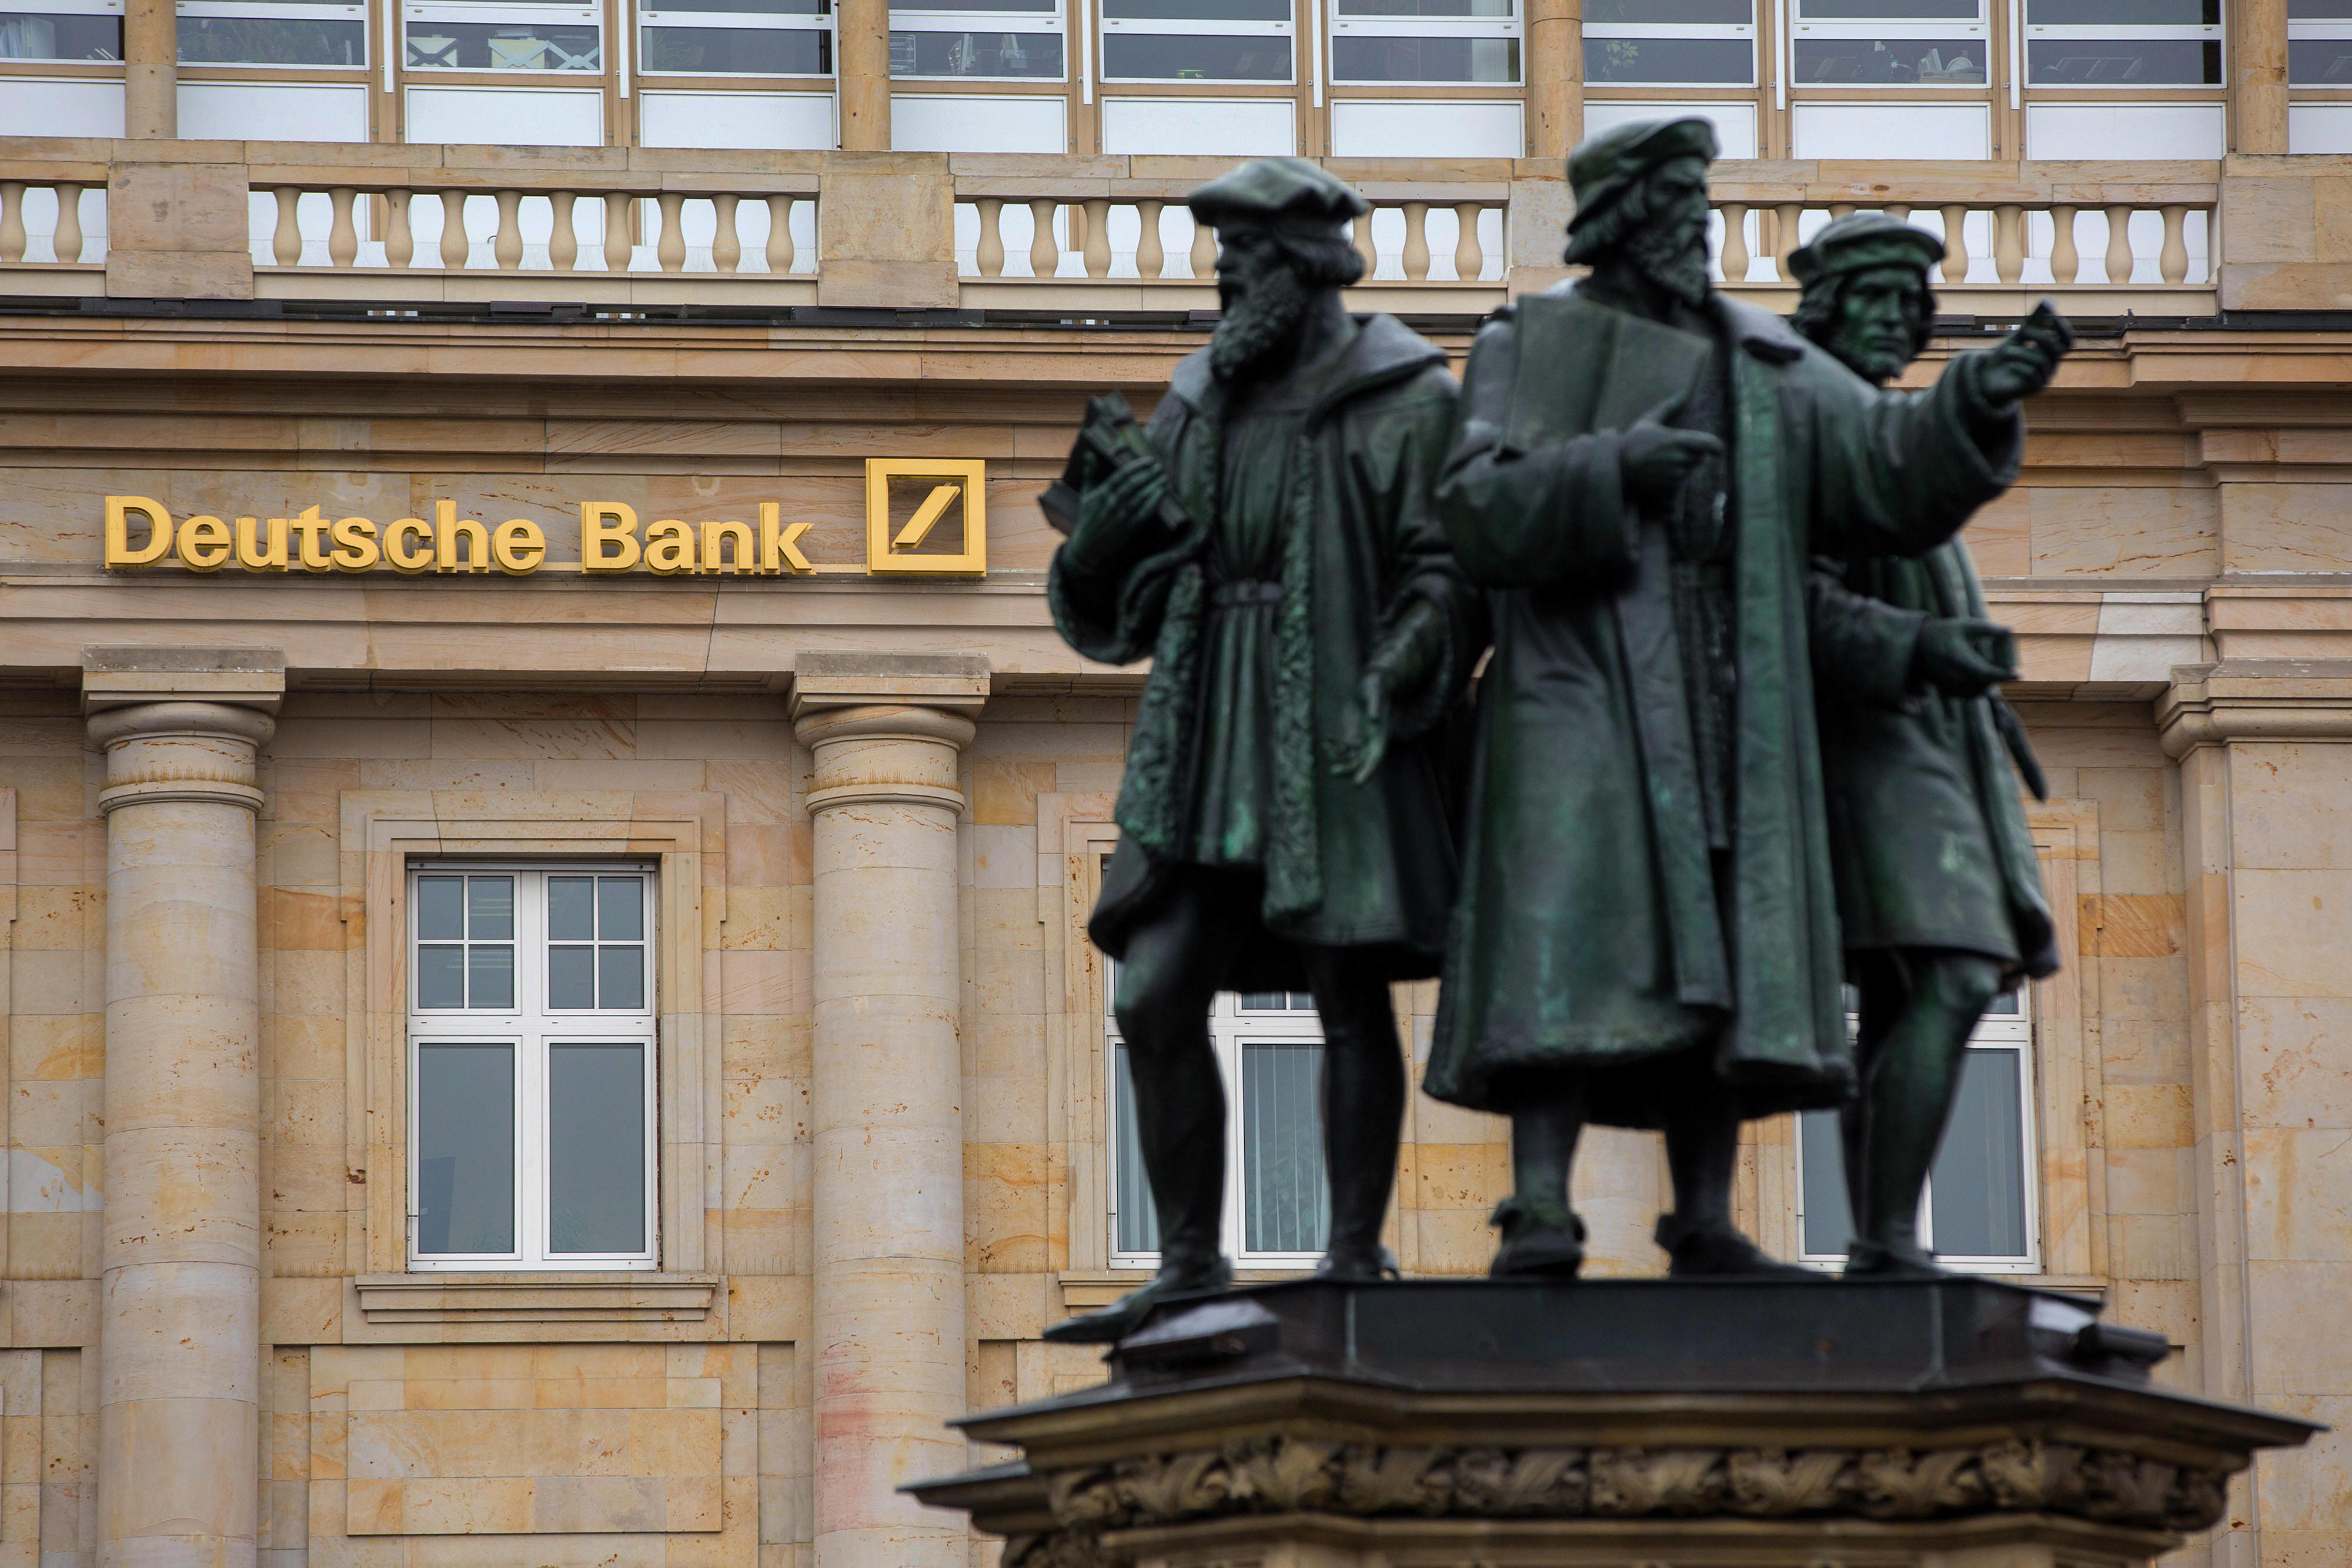 Deutsche Bank posts 832 million euro loss amid major restructuring plan